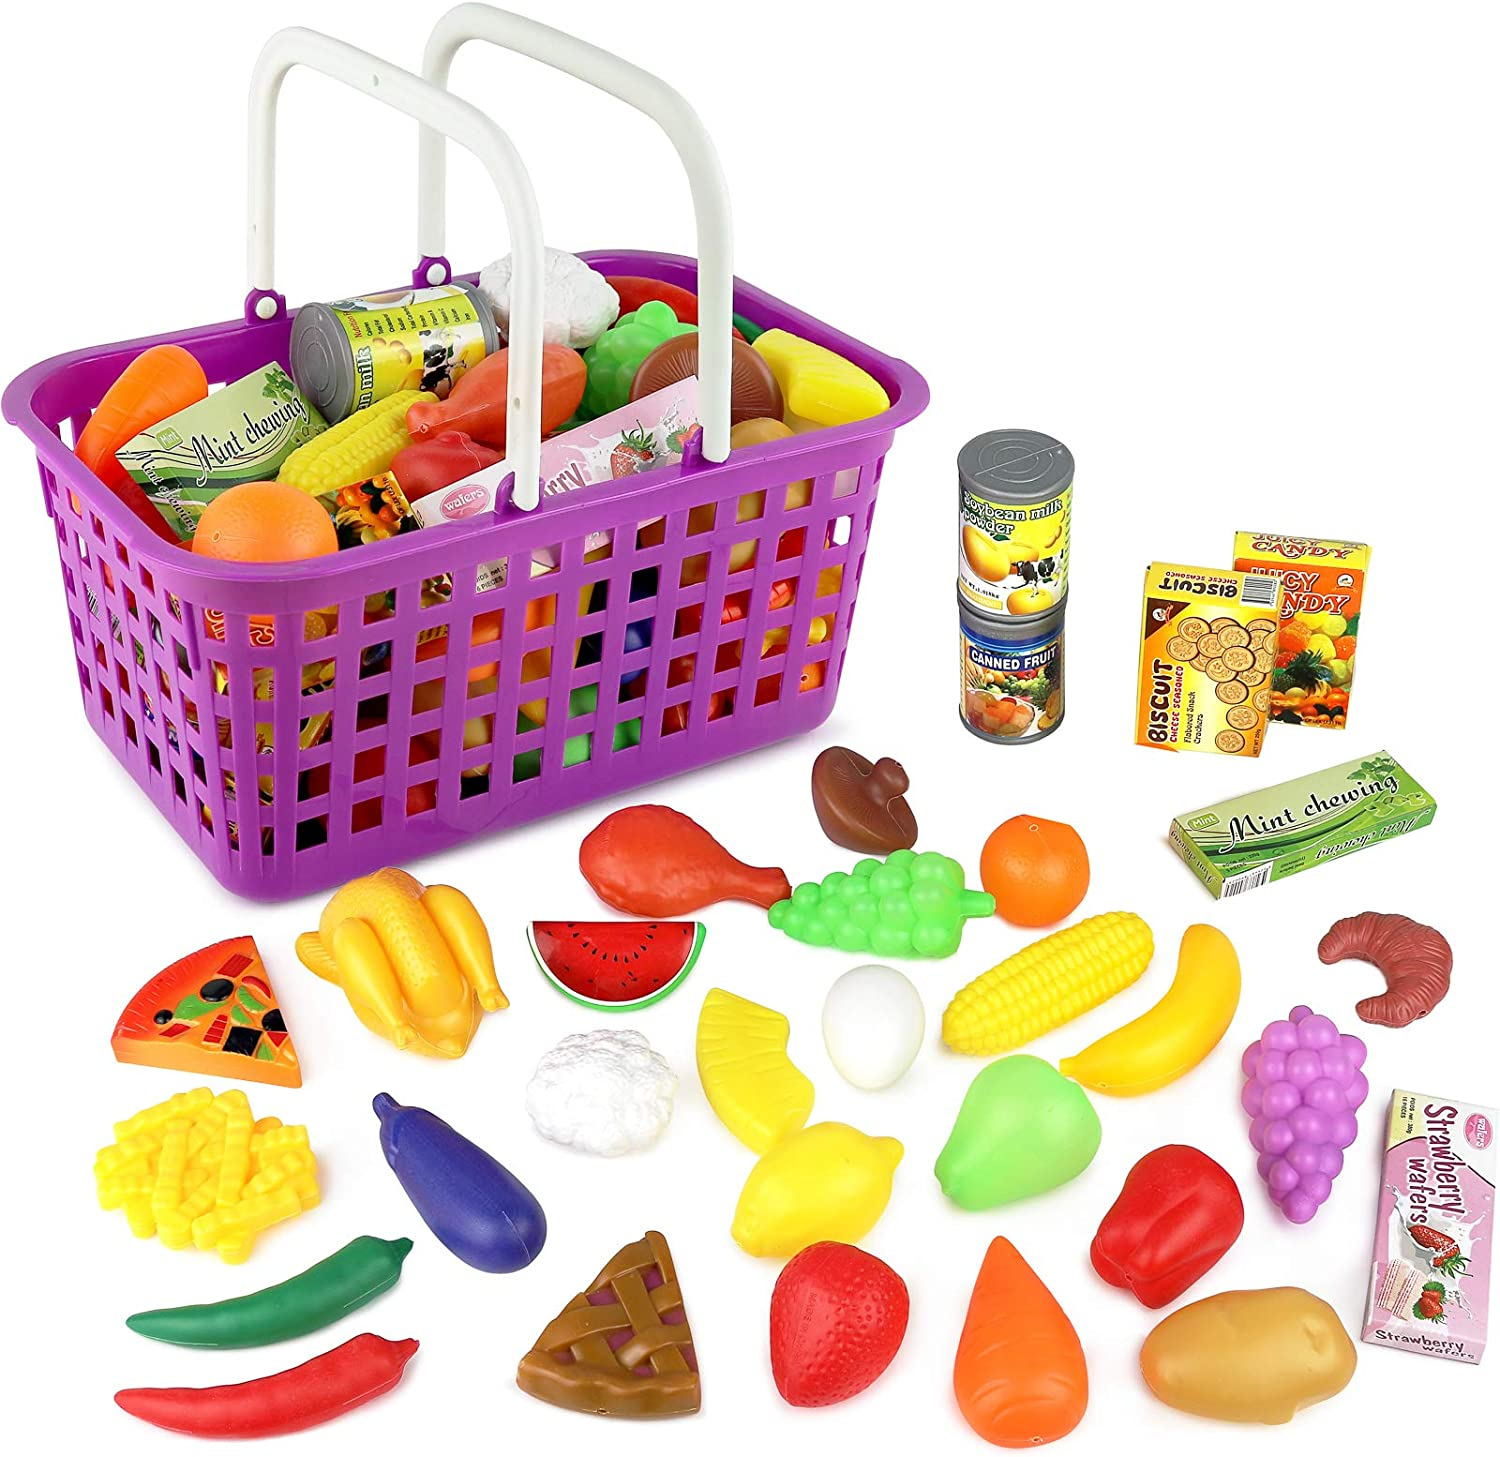 Fun Pretend Play Props Play House Kitchen Food Fruit Bowl Grocery Basket Toy